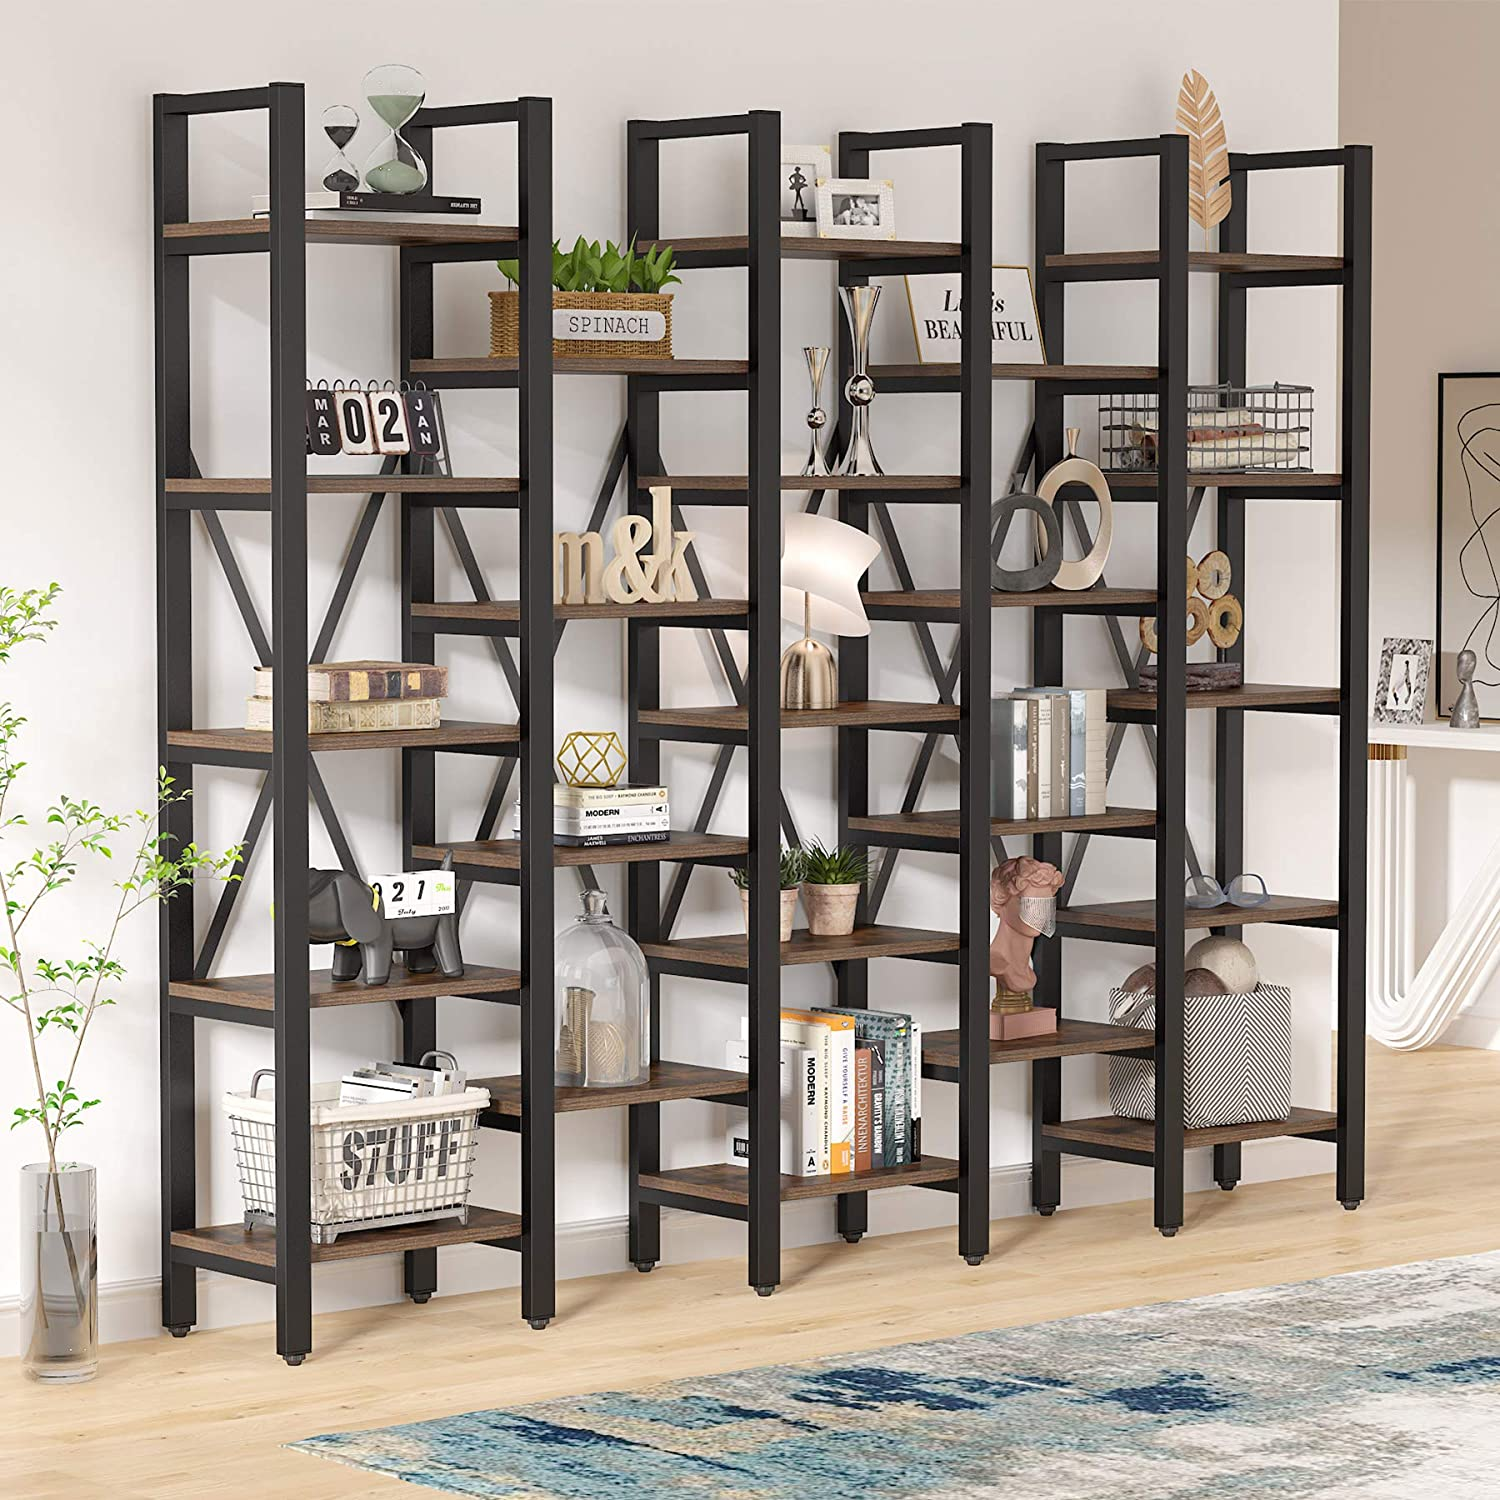 Tribesigns 86 Inch Large Open Bookcase Industrial 5 Tier Booksheklf With 23 Shelves Rustic 5 Shelves Etagere Bookcase Storage Shelf Vintage Wood Look Furniturefor Home Office Walmart Com Walmart Com